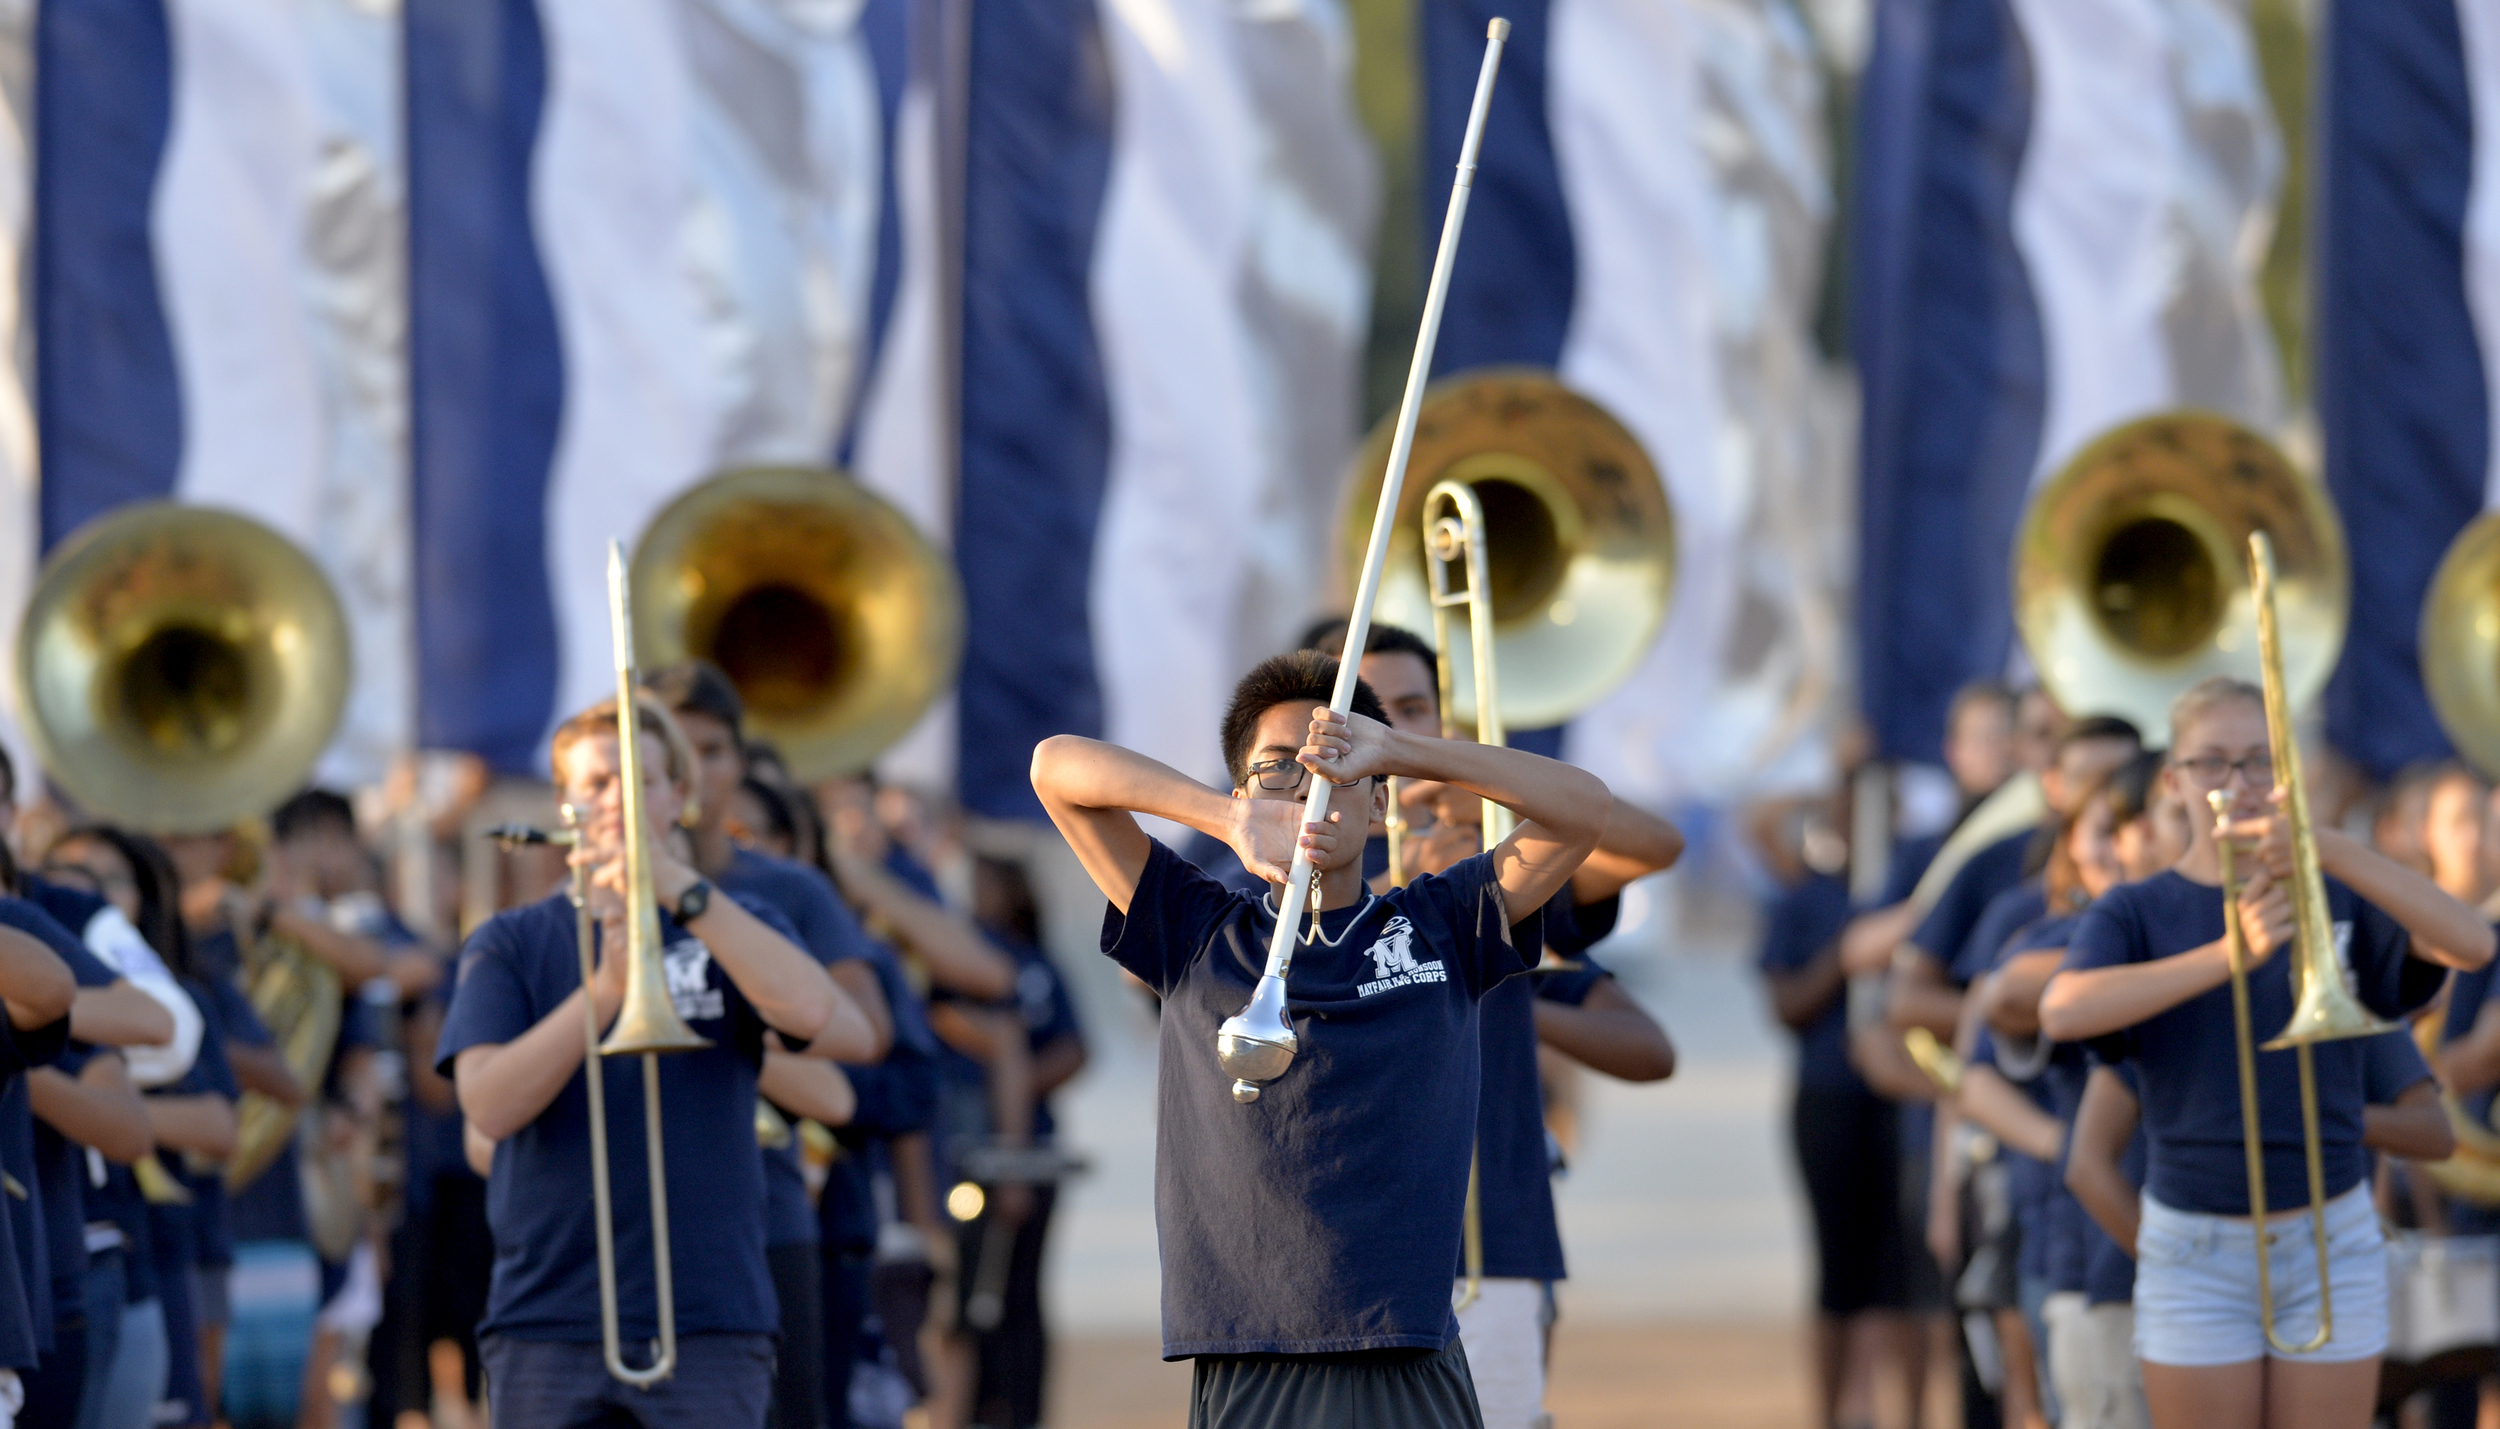 Gahr High school band performs a pregame show before the high school football team takes on Mayfair at Ron Yary Stadium in Bellflower, CA. Friday September 4, 2015.